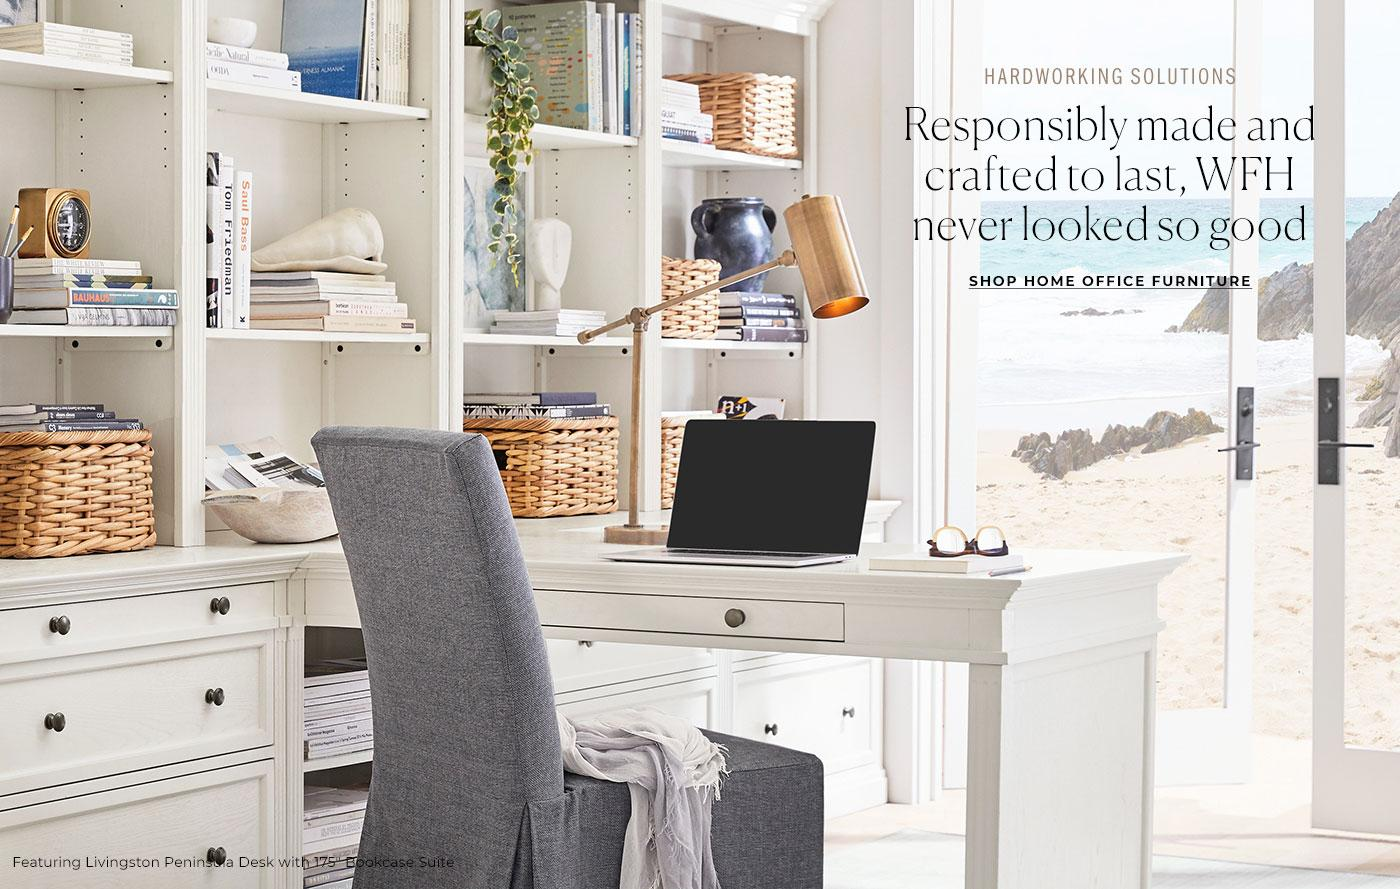 Hardworking Solutions. Shop Home Office Furniture.